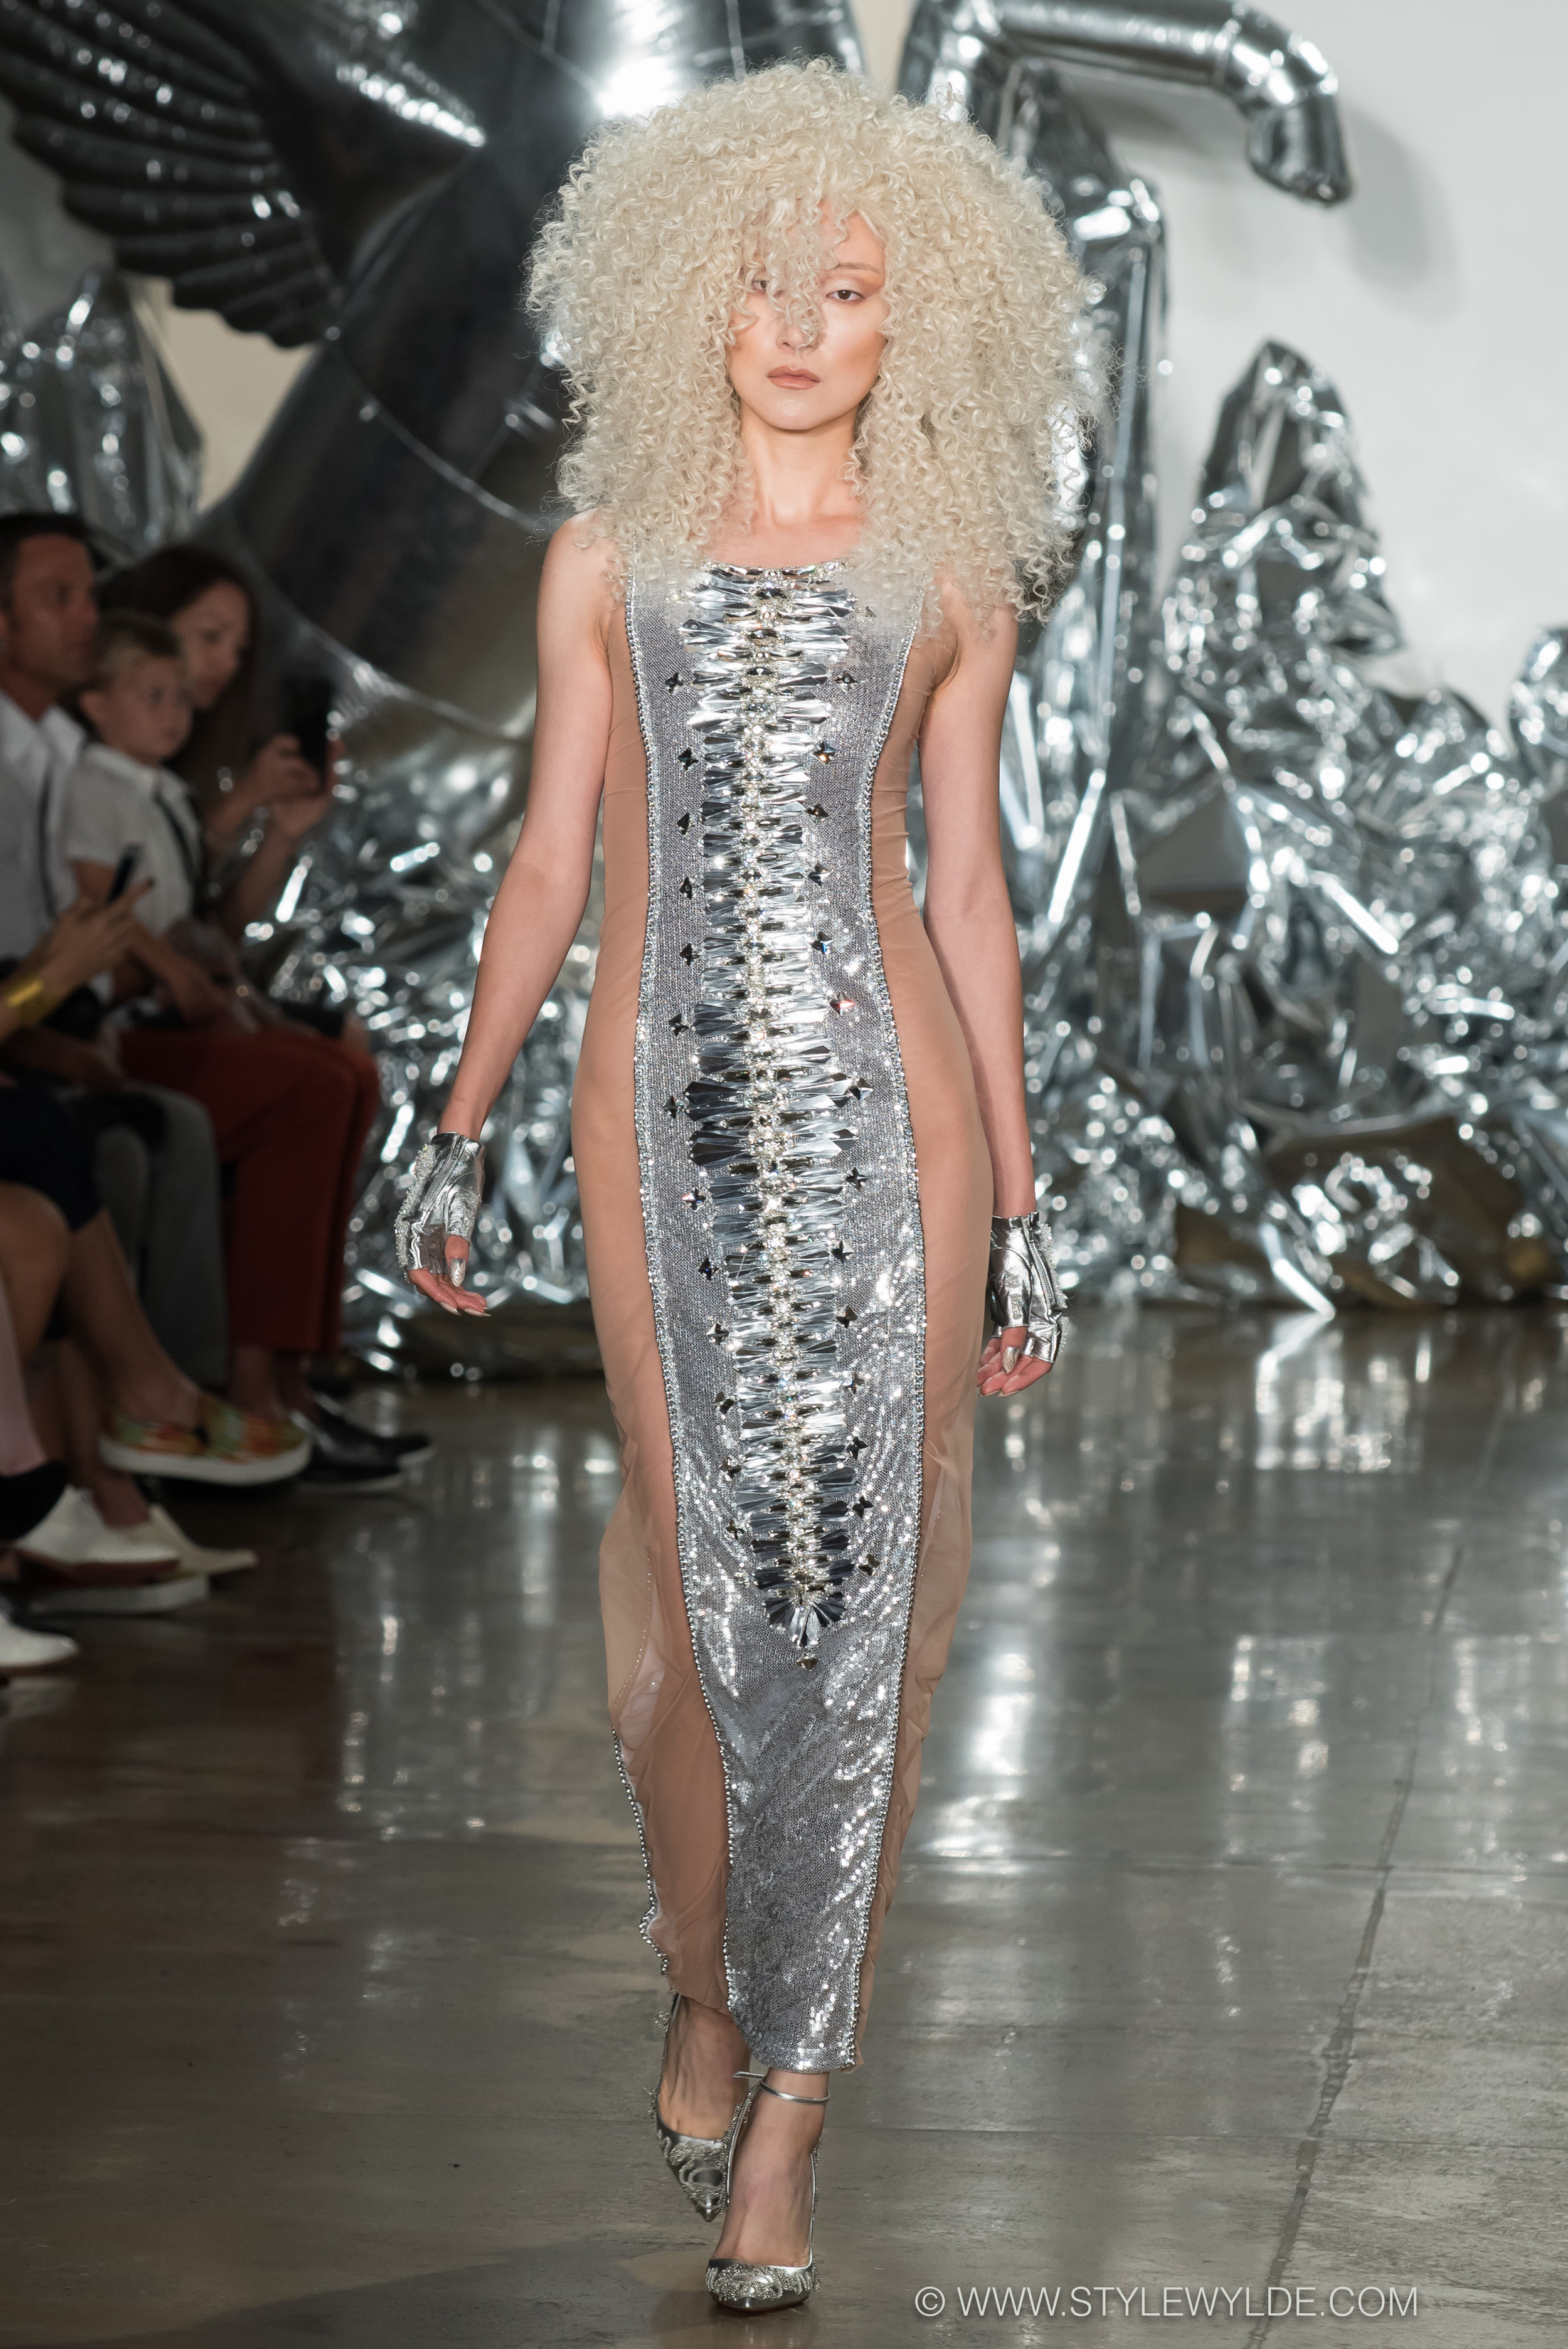 stylewylde-The Blonds SS17-FOH- Edits-46.jpg